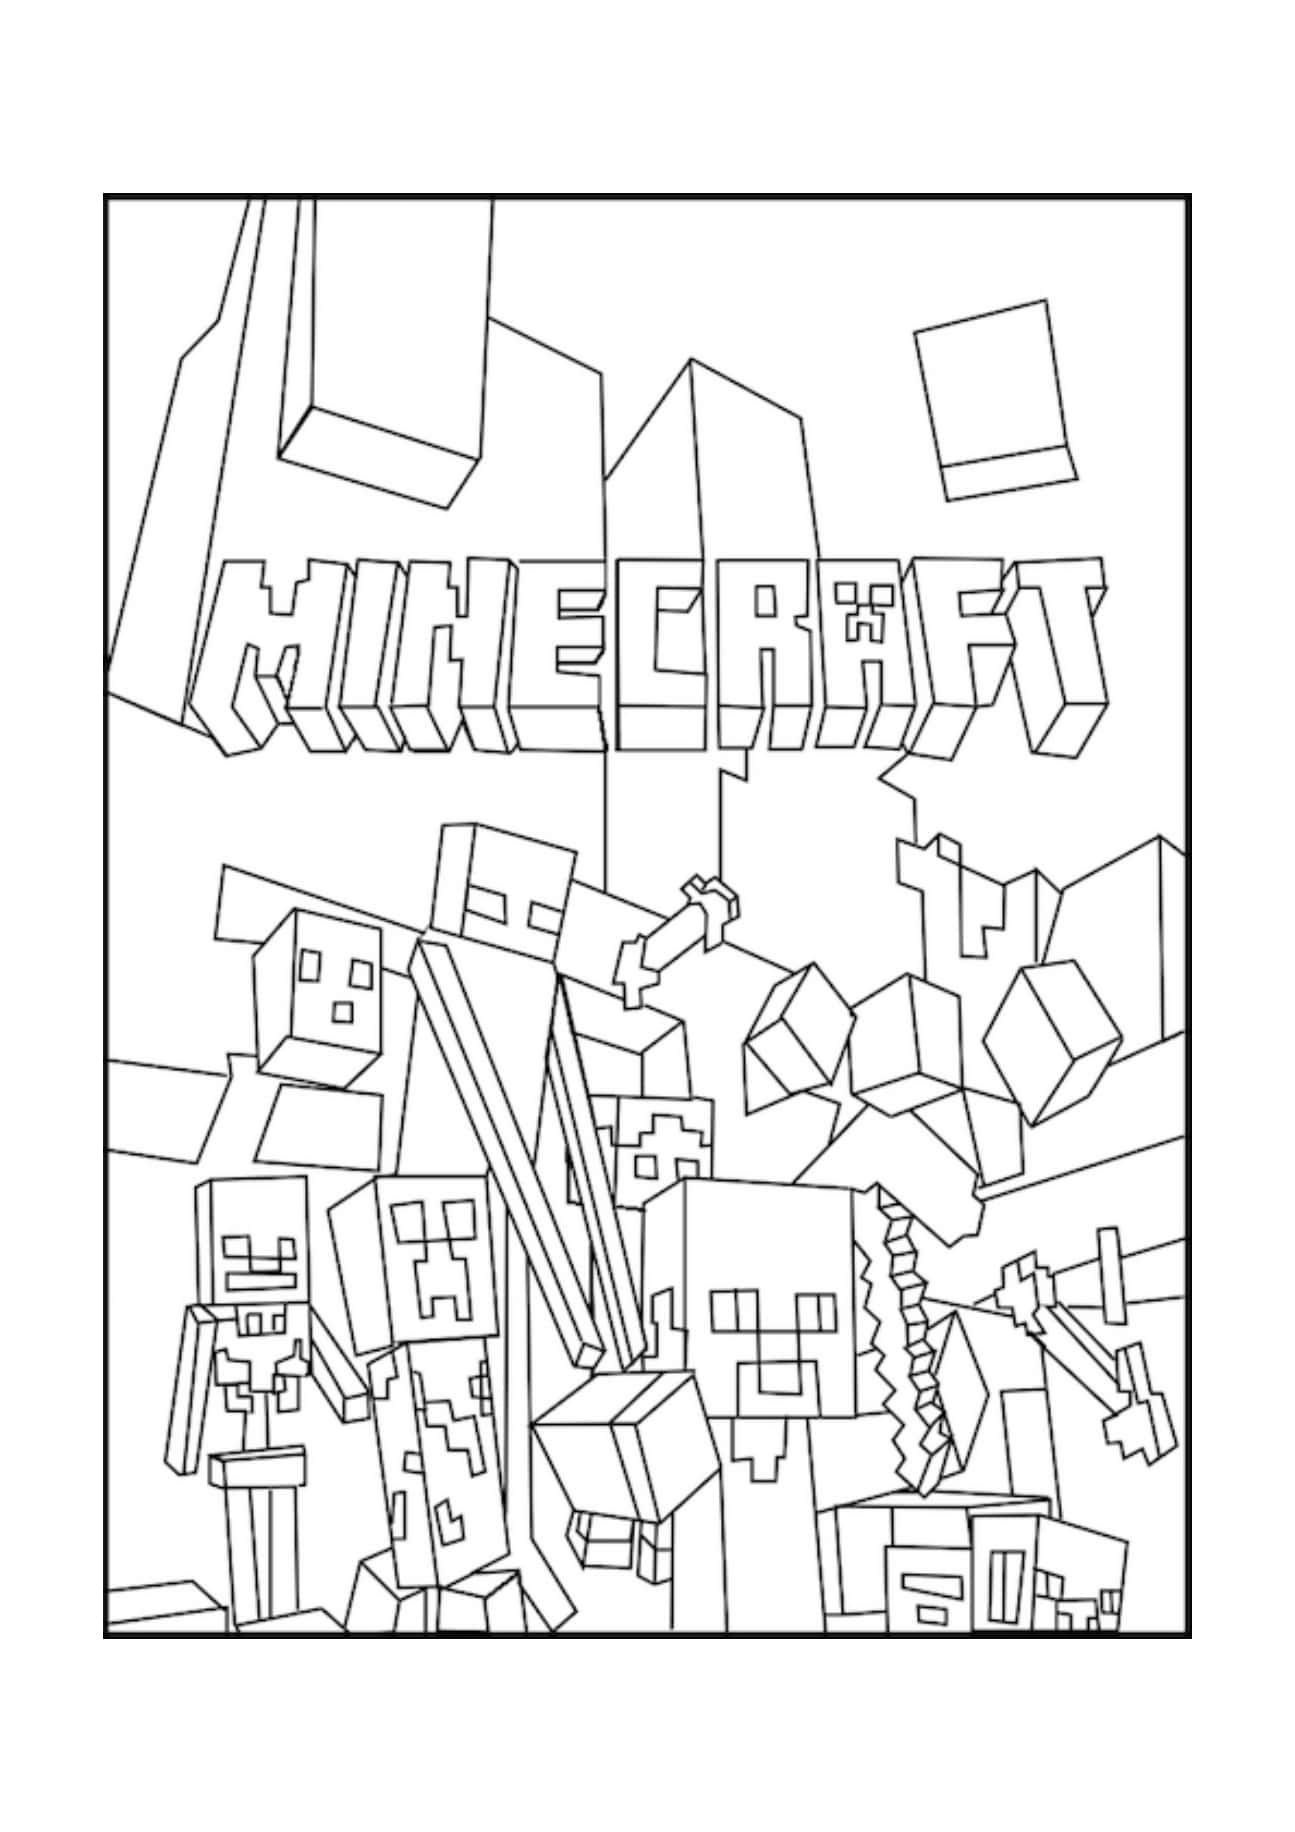 Minecraft Coloring Pages Print Them For Free 100 Pictures From The Game Minecraft Coloring Pages Lego Coloring Pages Lego Coloring